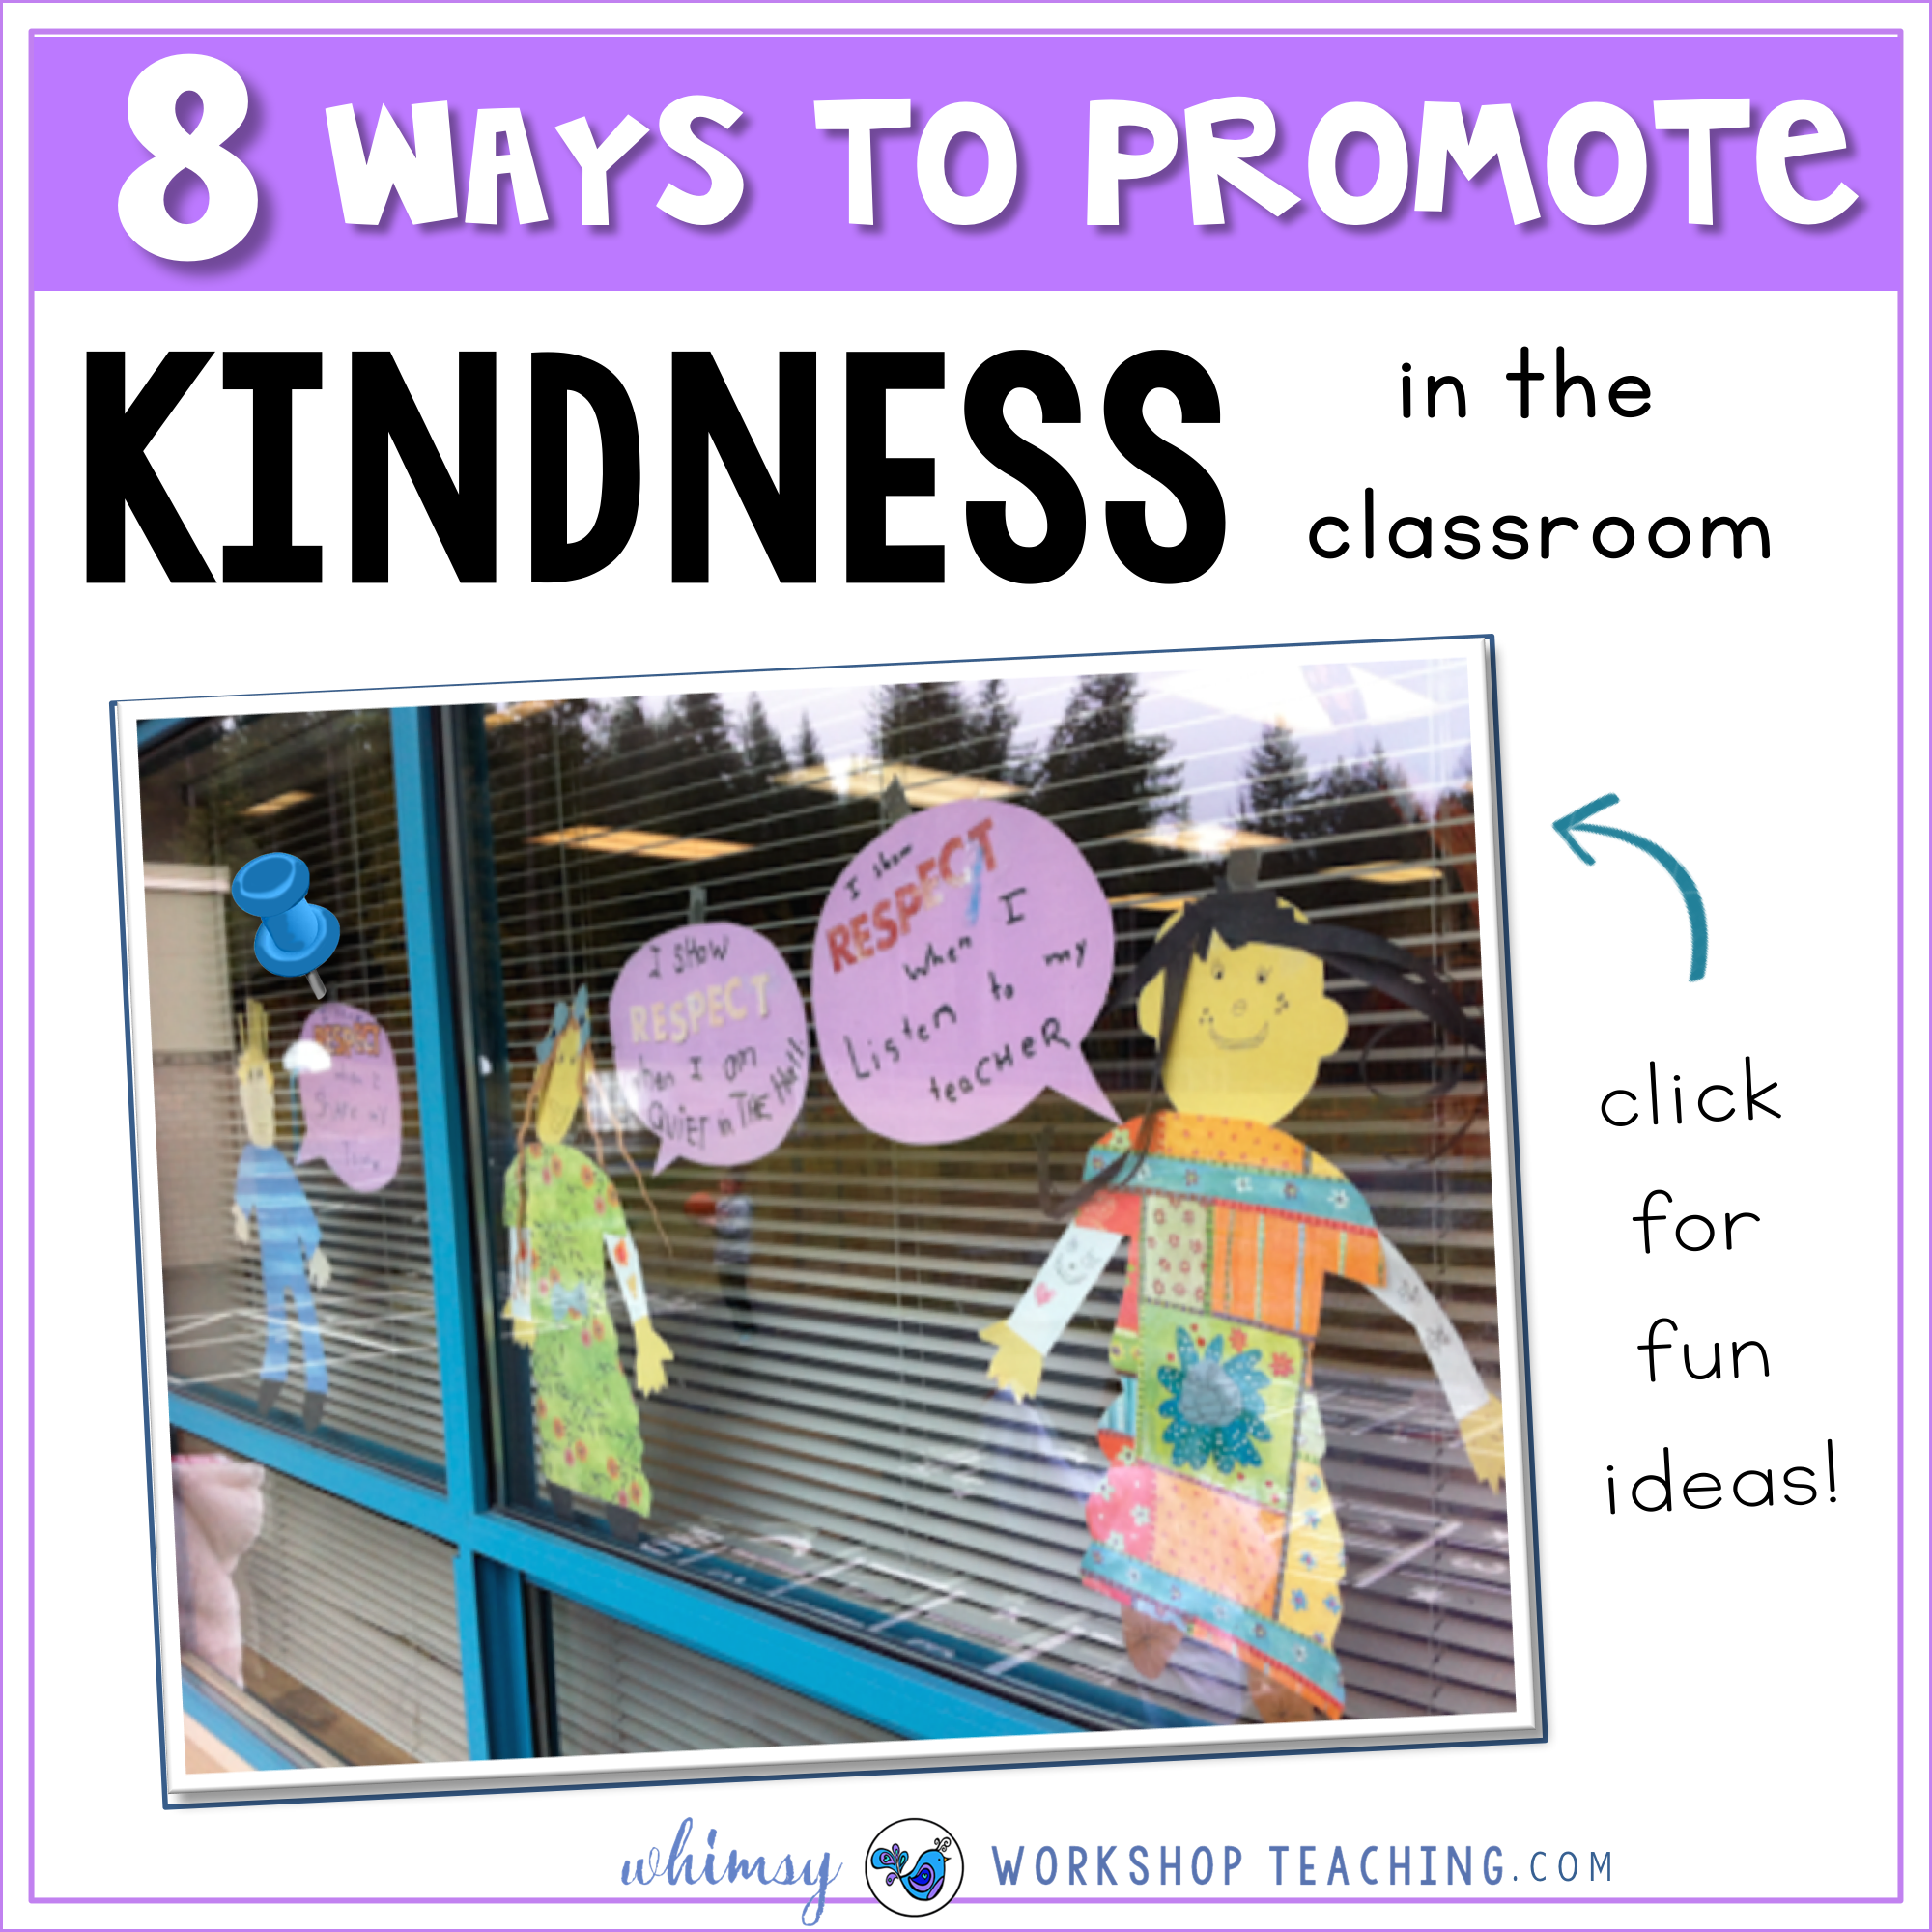 8 ways to promote kindness in the classroom